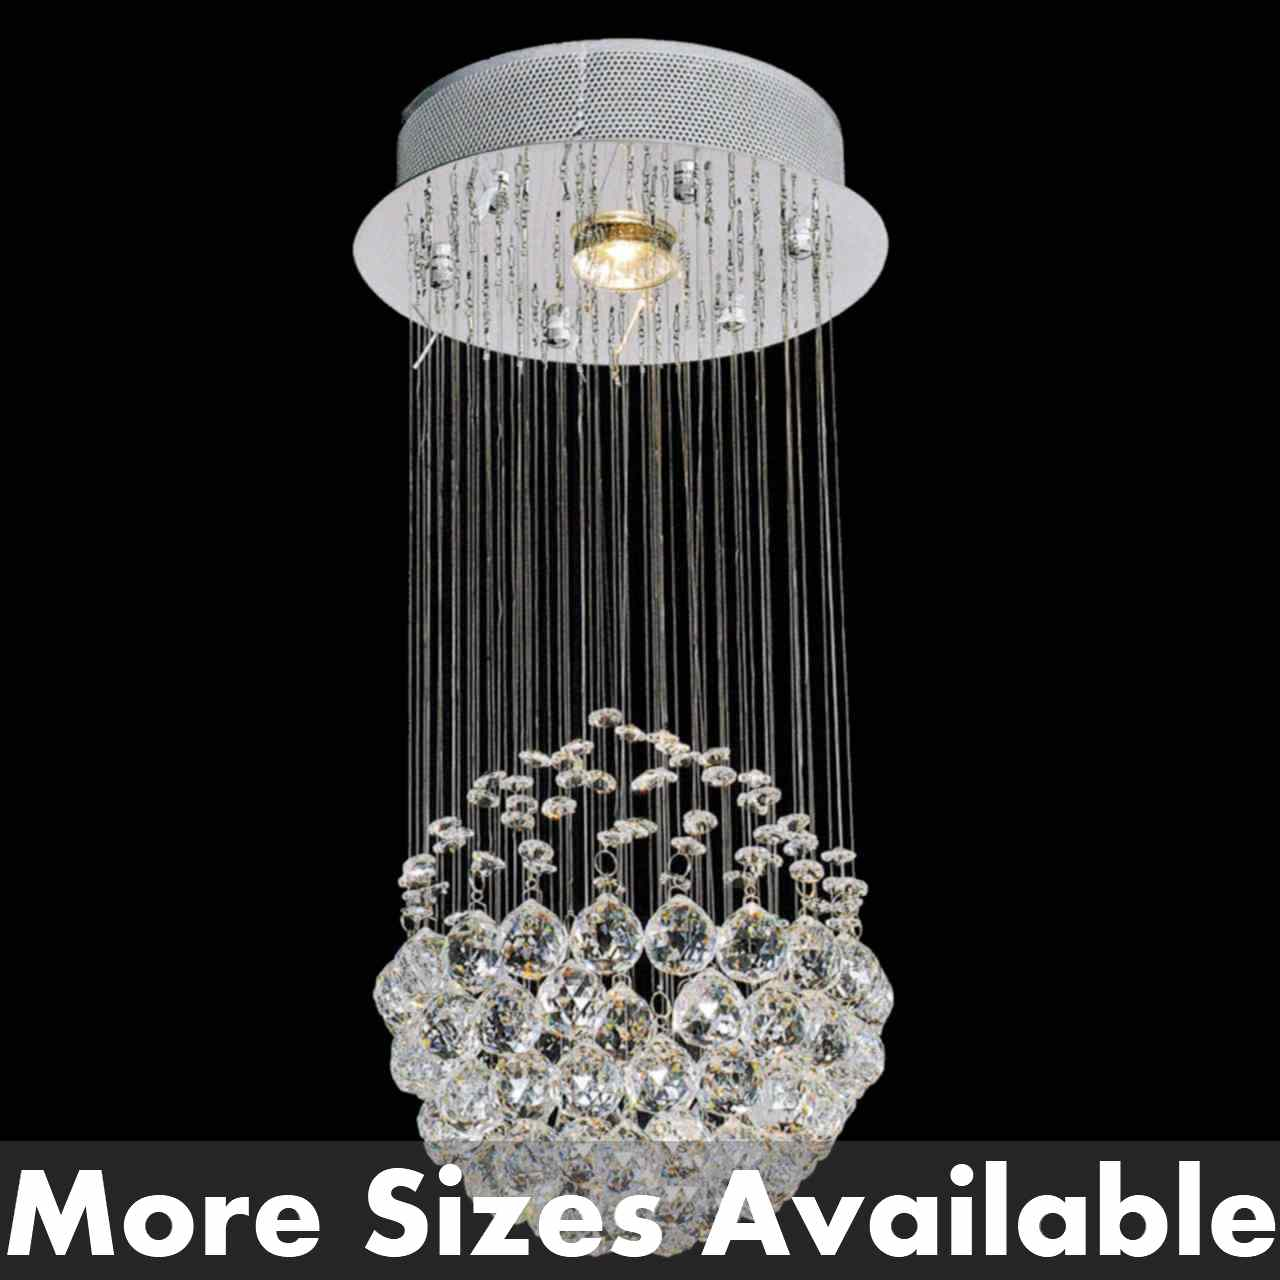 Small Simple Chandelier Sphere Modern Crystal Chandelier Small Mirror Stainless Steel Base 1 Light